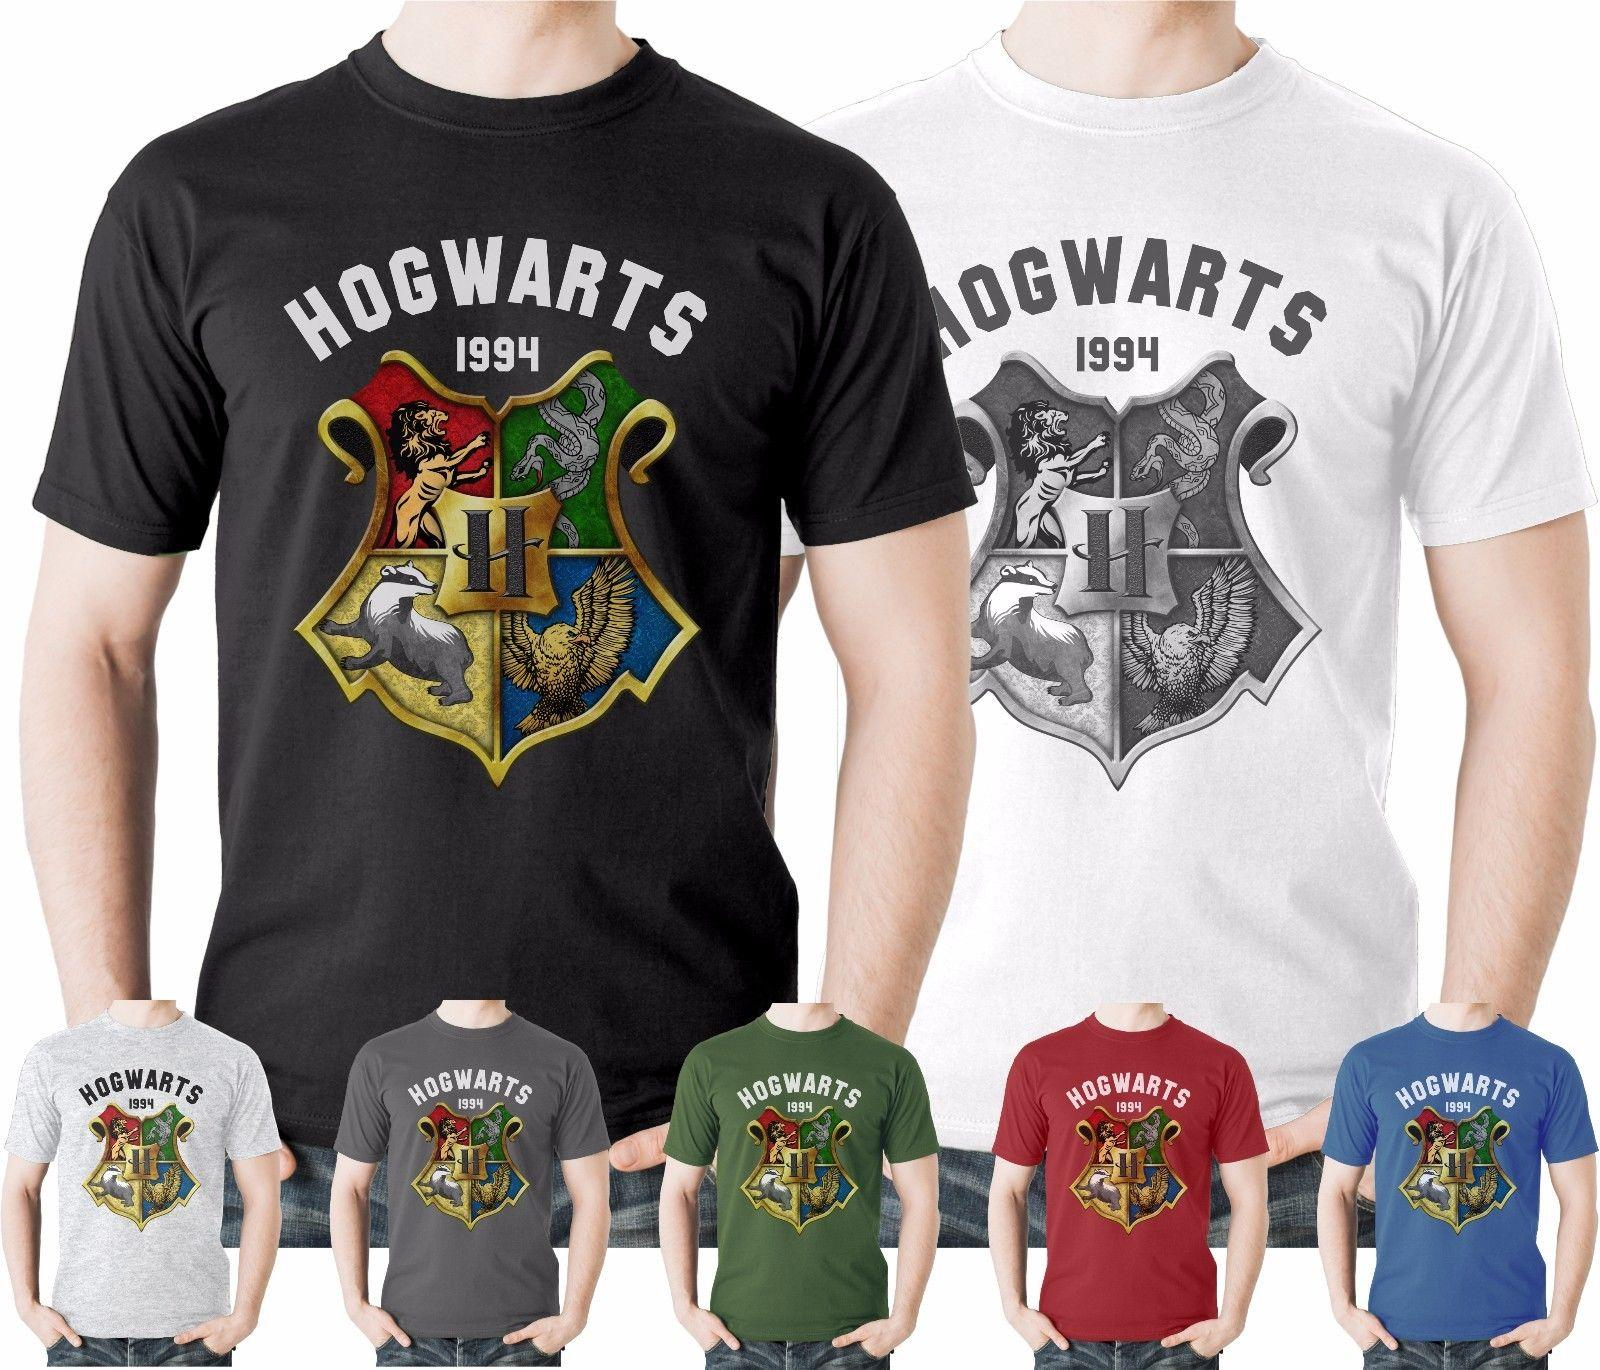 3d1186fb Harry Potter Hogwarts T Shirt Gryffindor Quidditch Slytherin Crest  HermioneFunny Unisex Casual Tshirt Awesome Shirt Design Free T Shirts From  Sg_outlet, ...